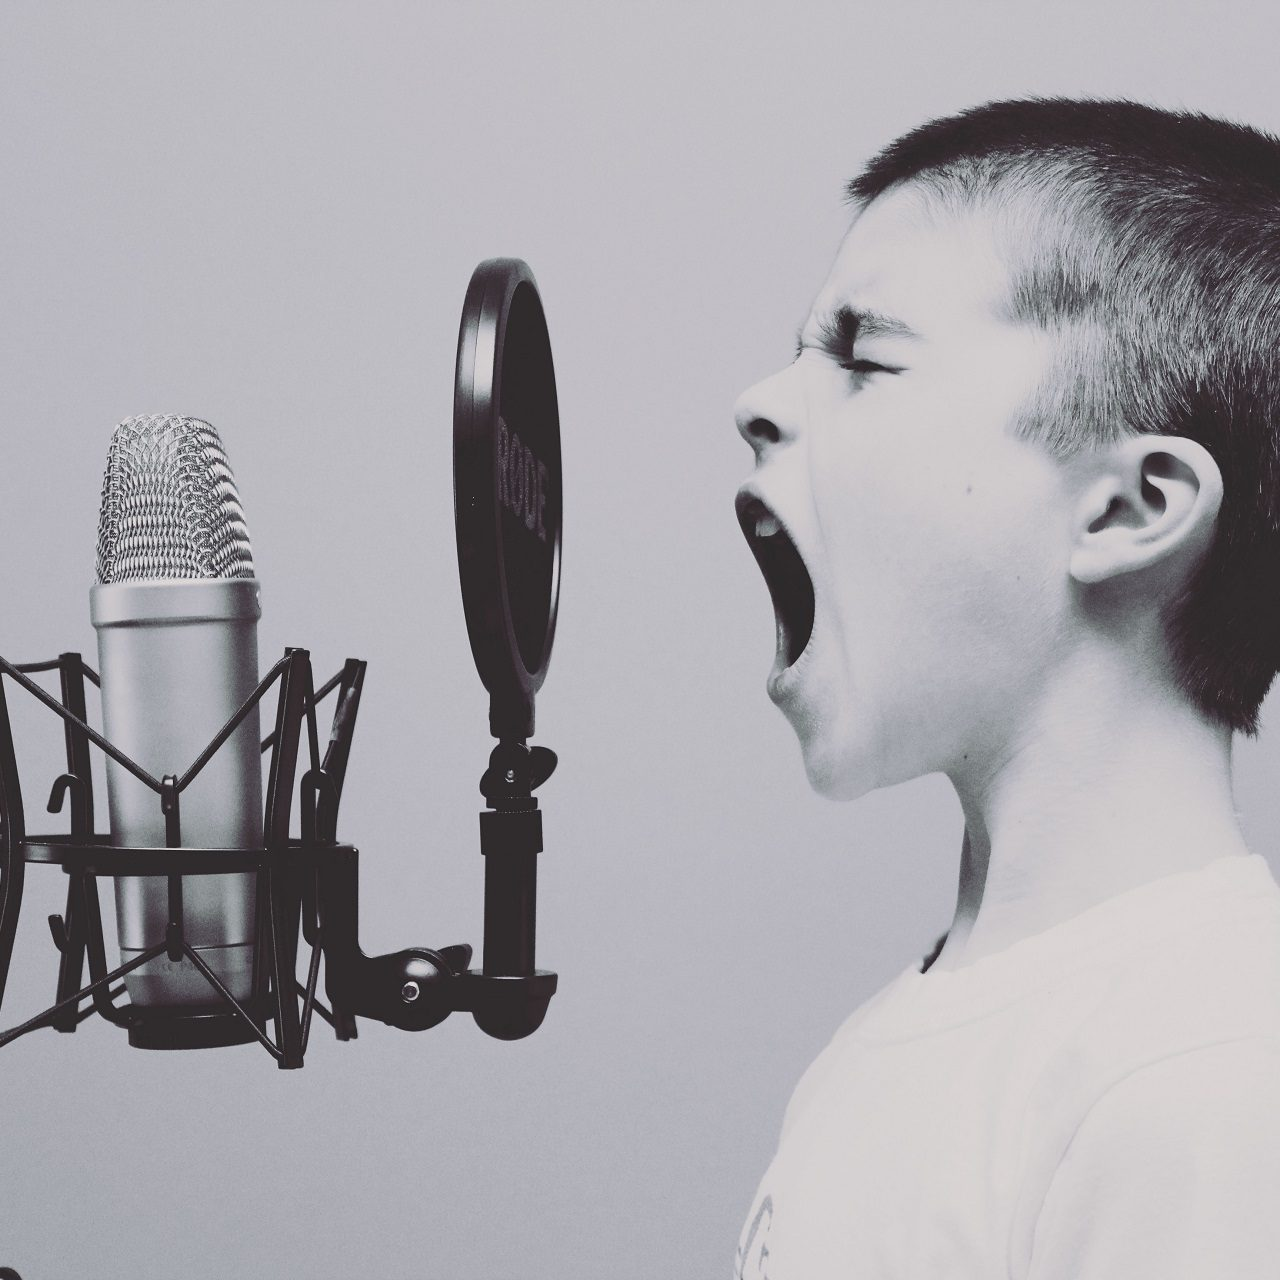 7 Easy Ways to Empower the Bossy Child Out of His Bossiness